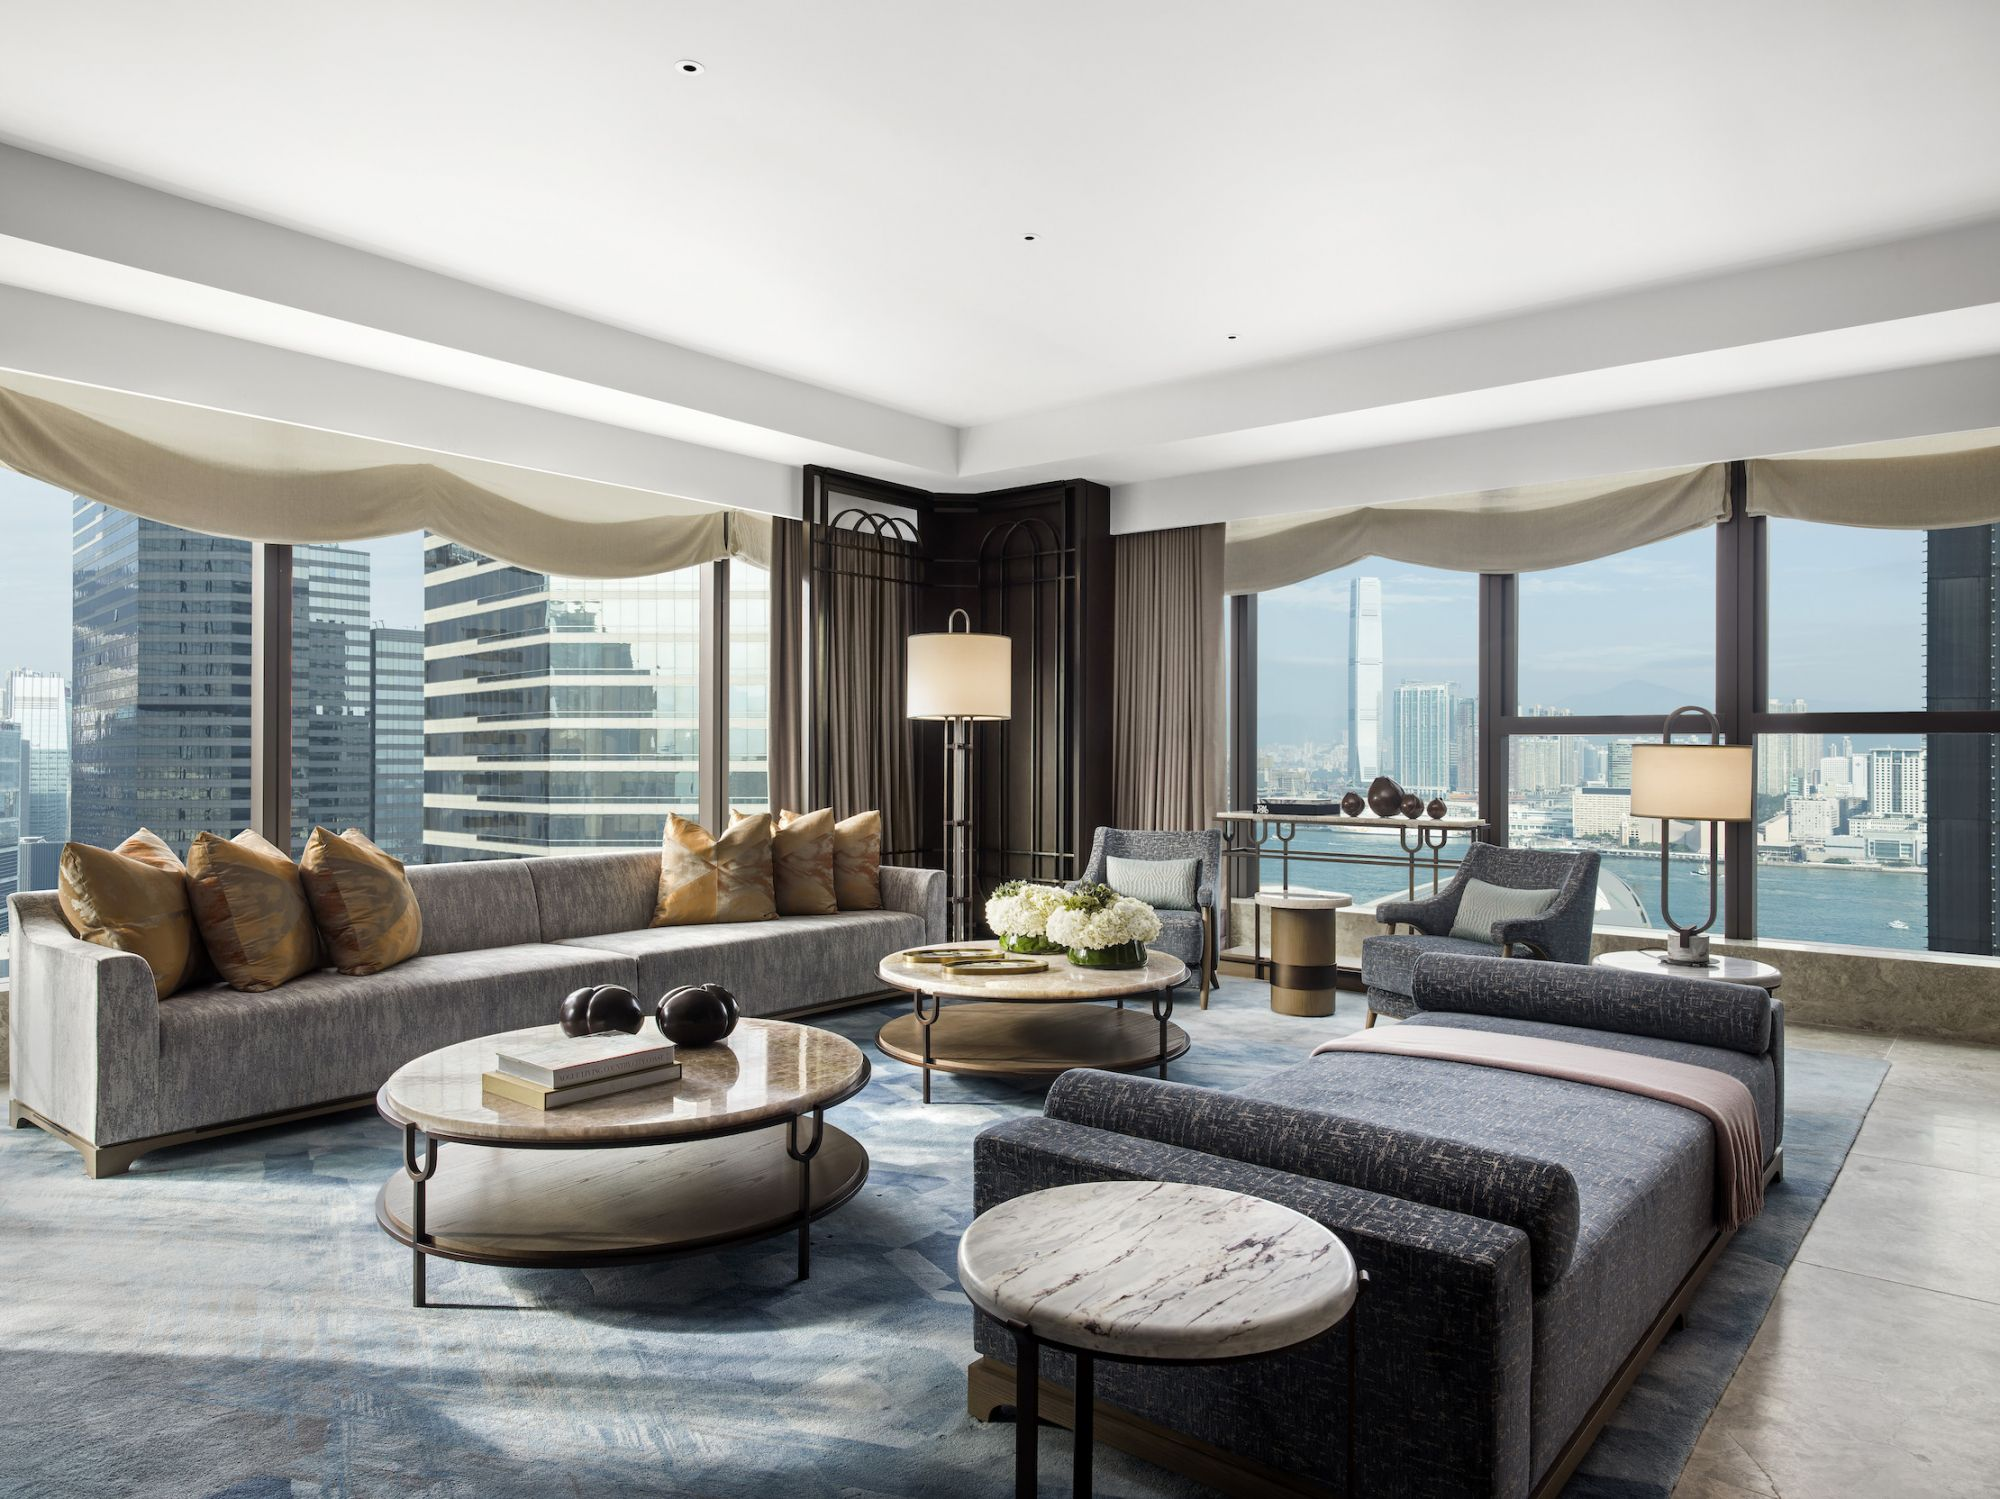 5 Hong Kong Hotels For A Staycation With Friends